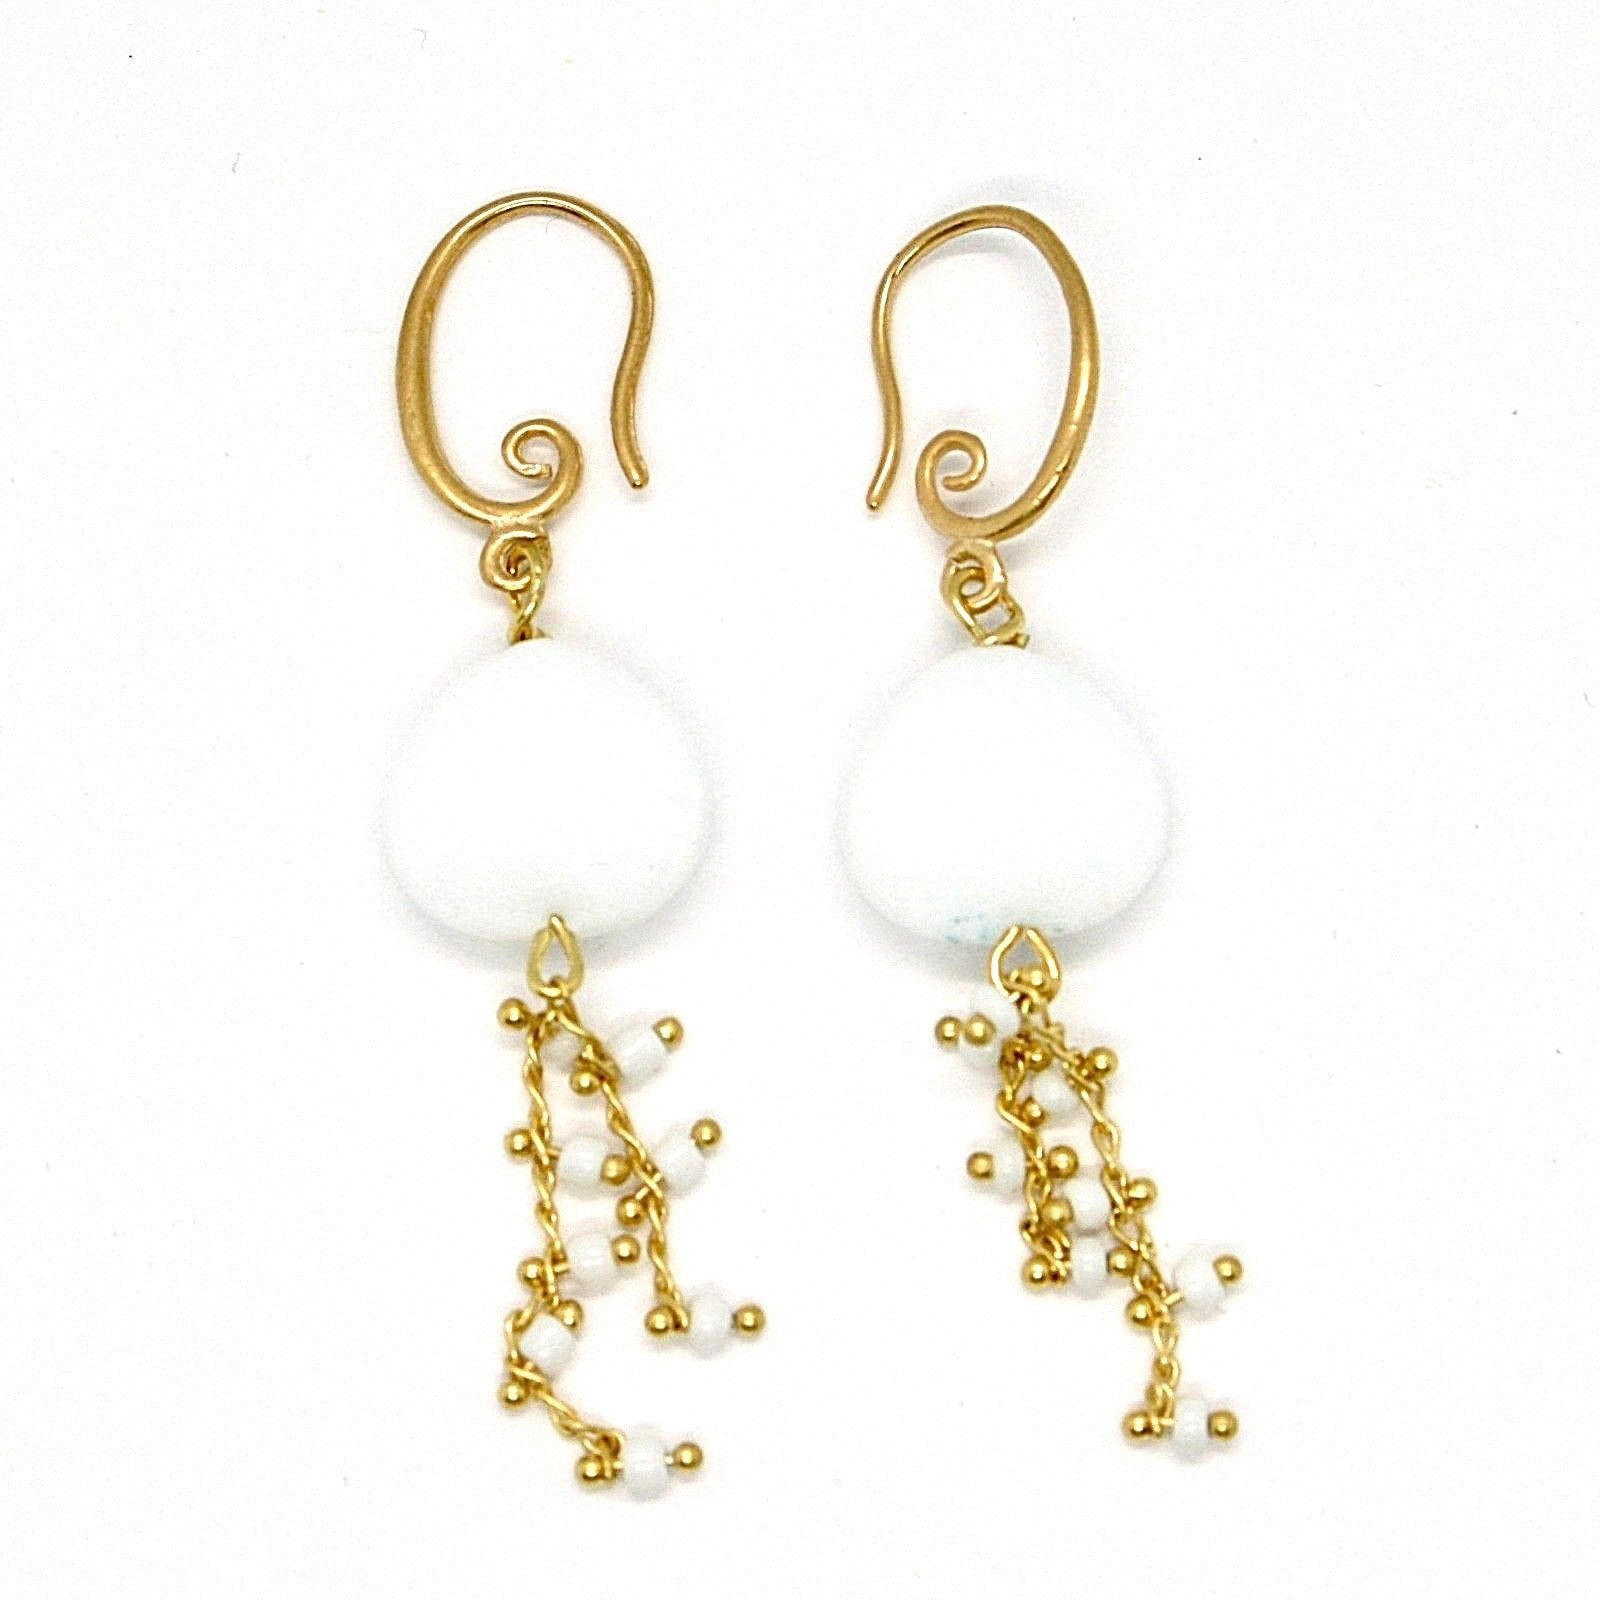 EARRINGS ANTICA MURRINA VENEZIA WITH MURANO GLASS WHITE DROP OR570A02